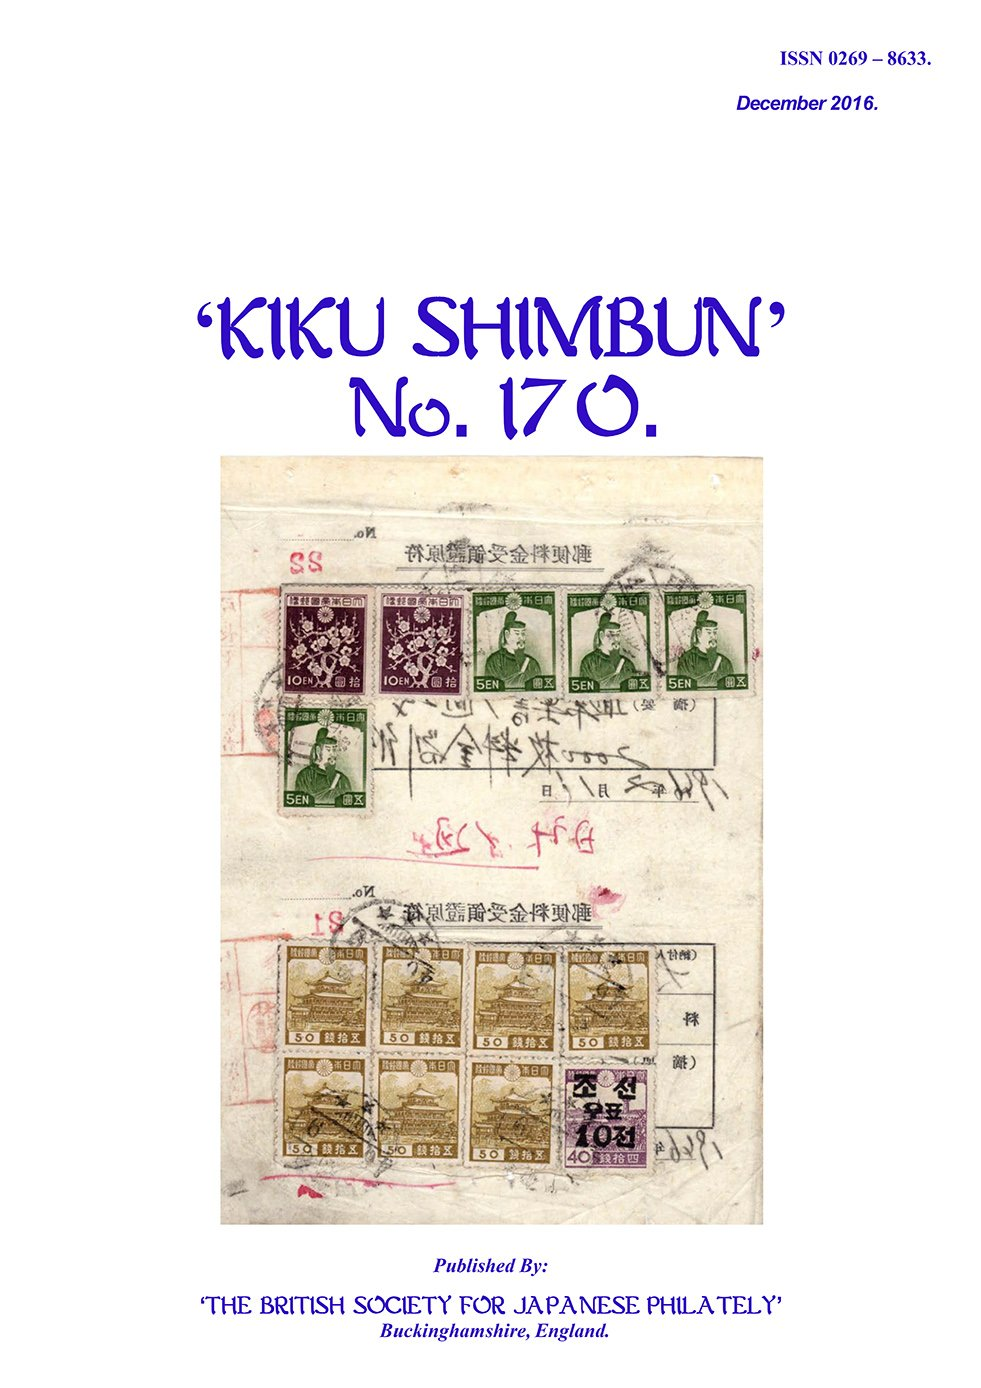 Front cover of Kiku Shimbun 170 (December 2016).